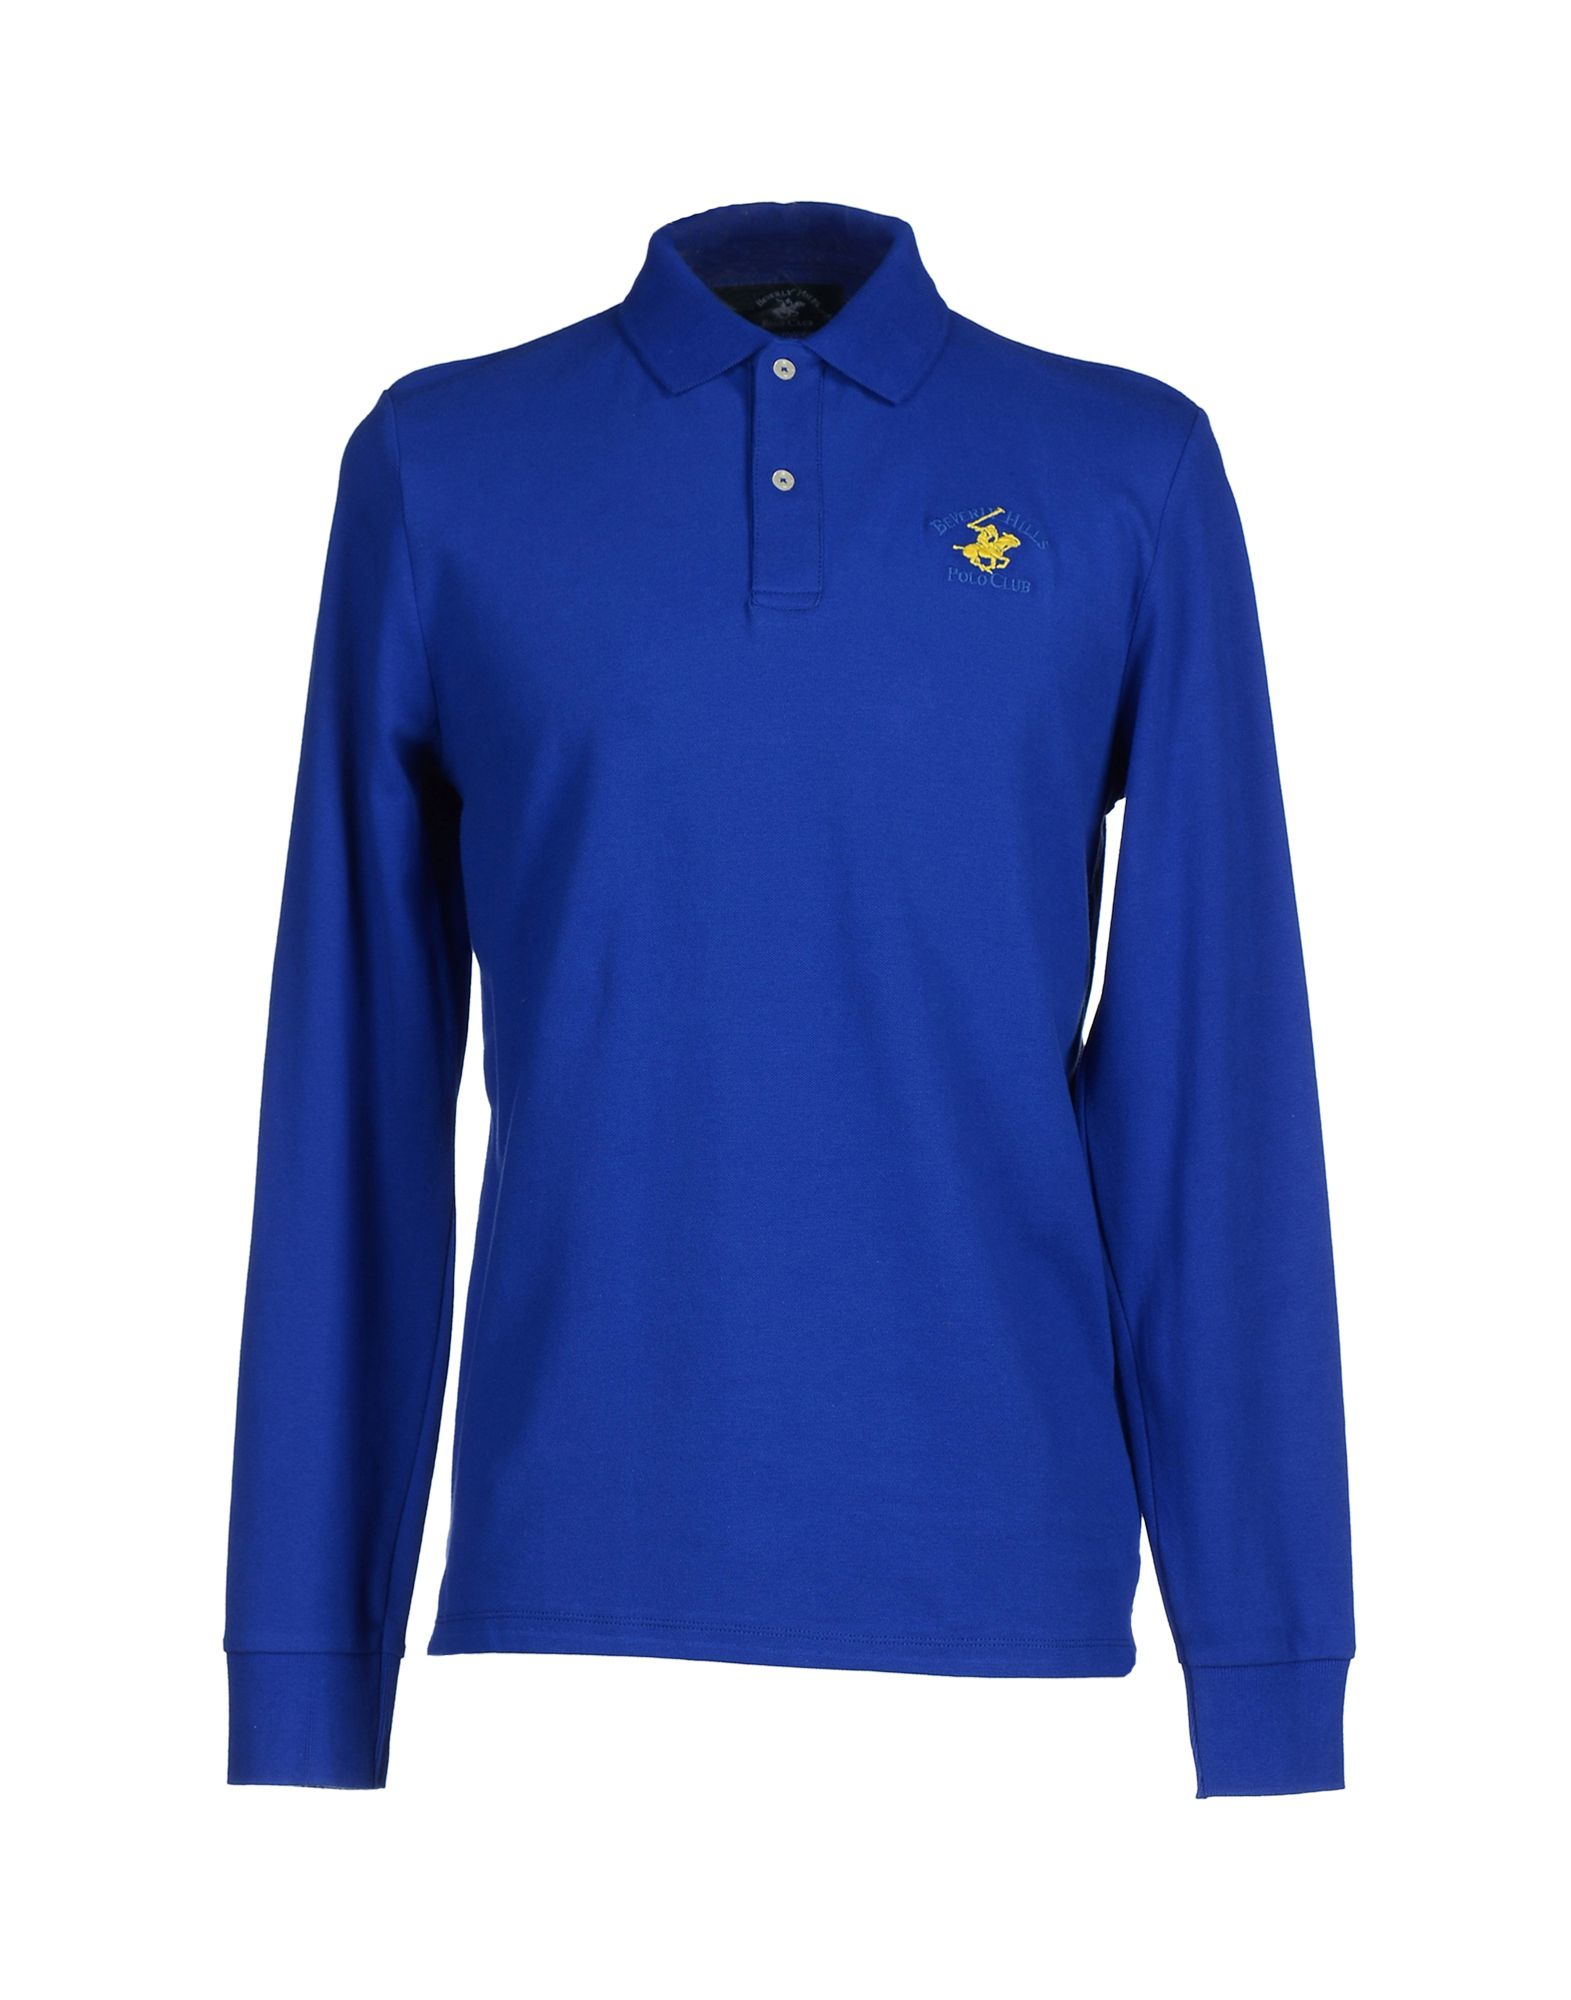 Beverly Hills Polo Club Polo Shirt In Blue For Men Bright